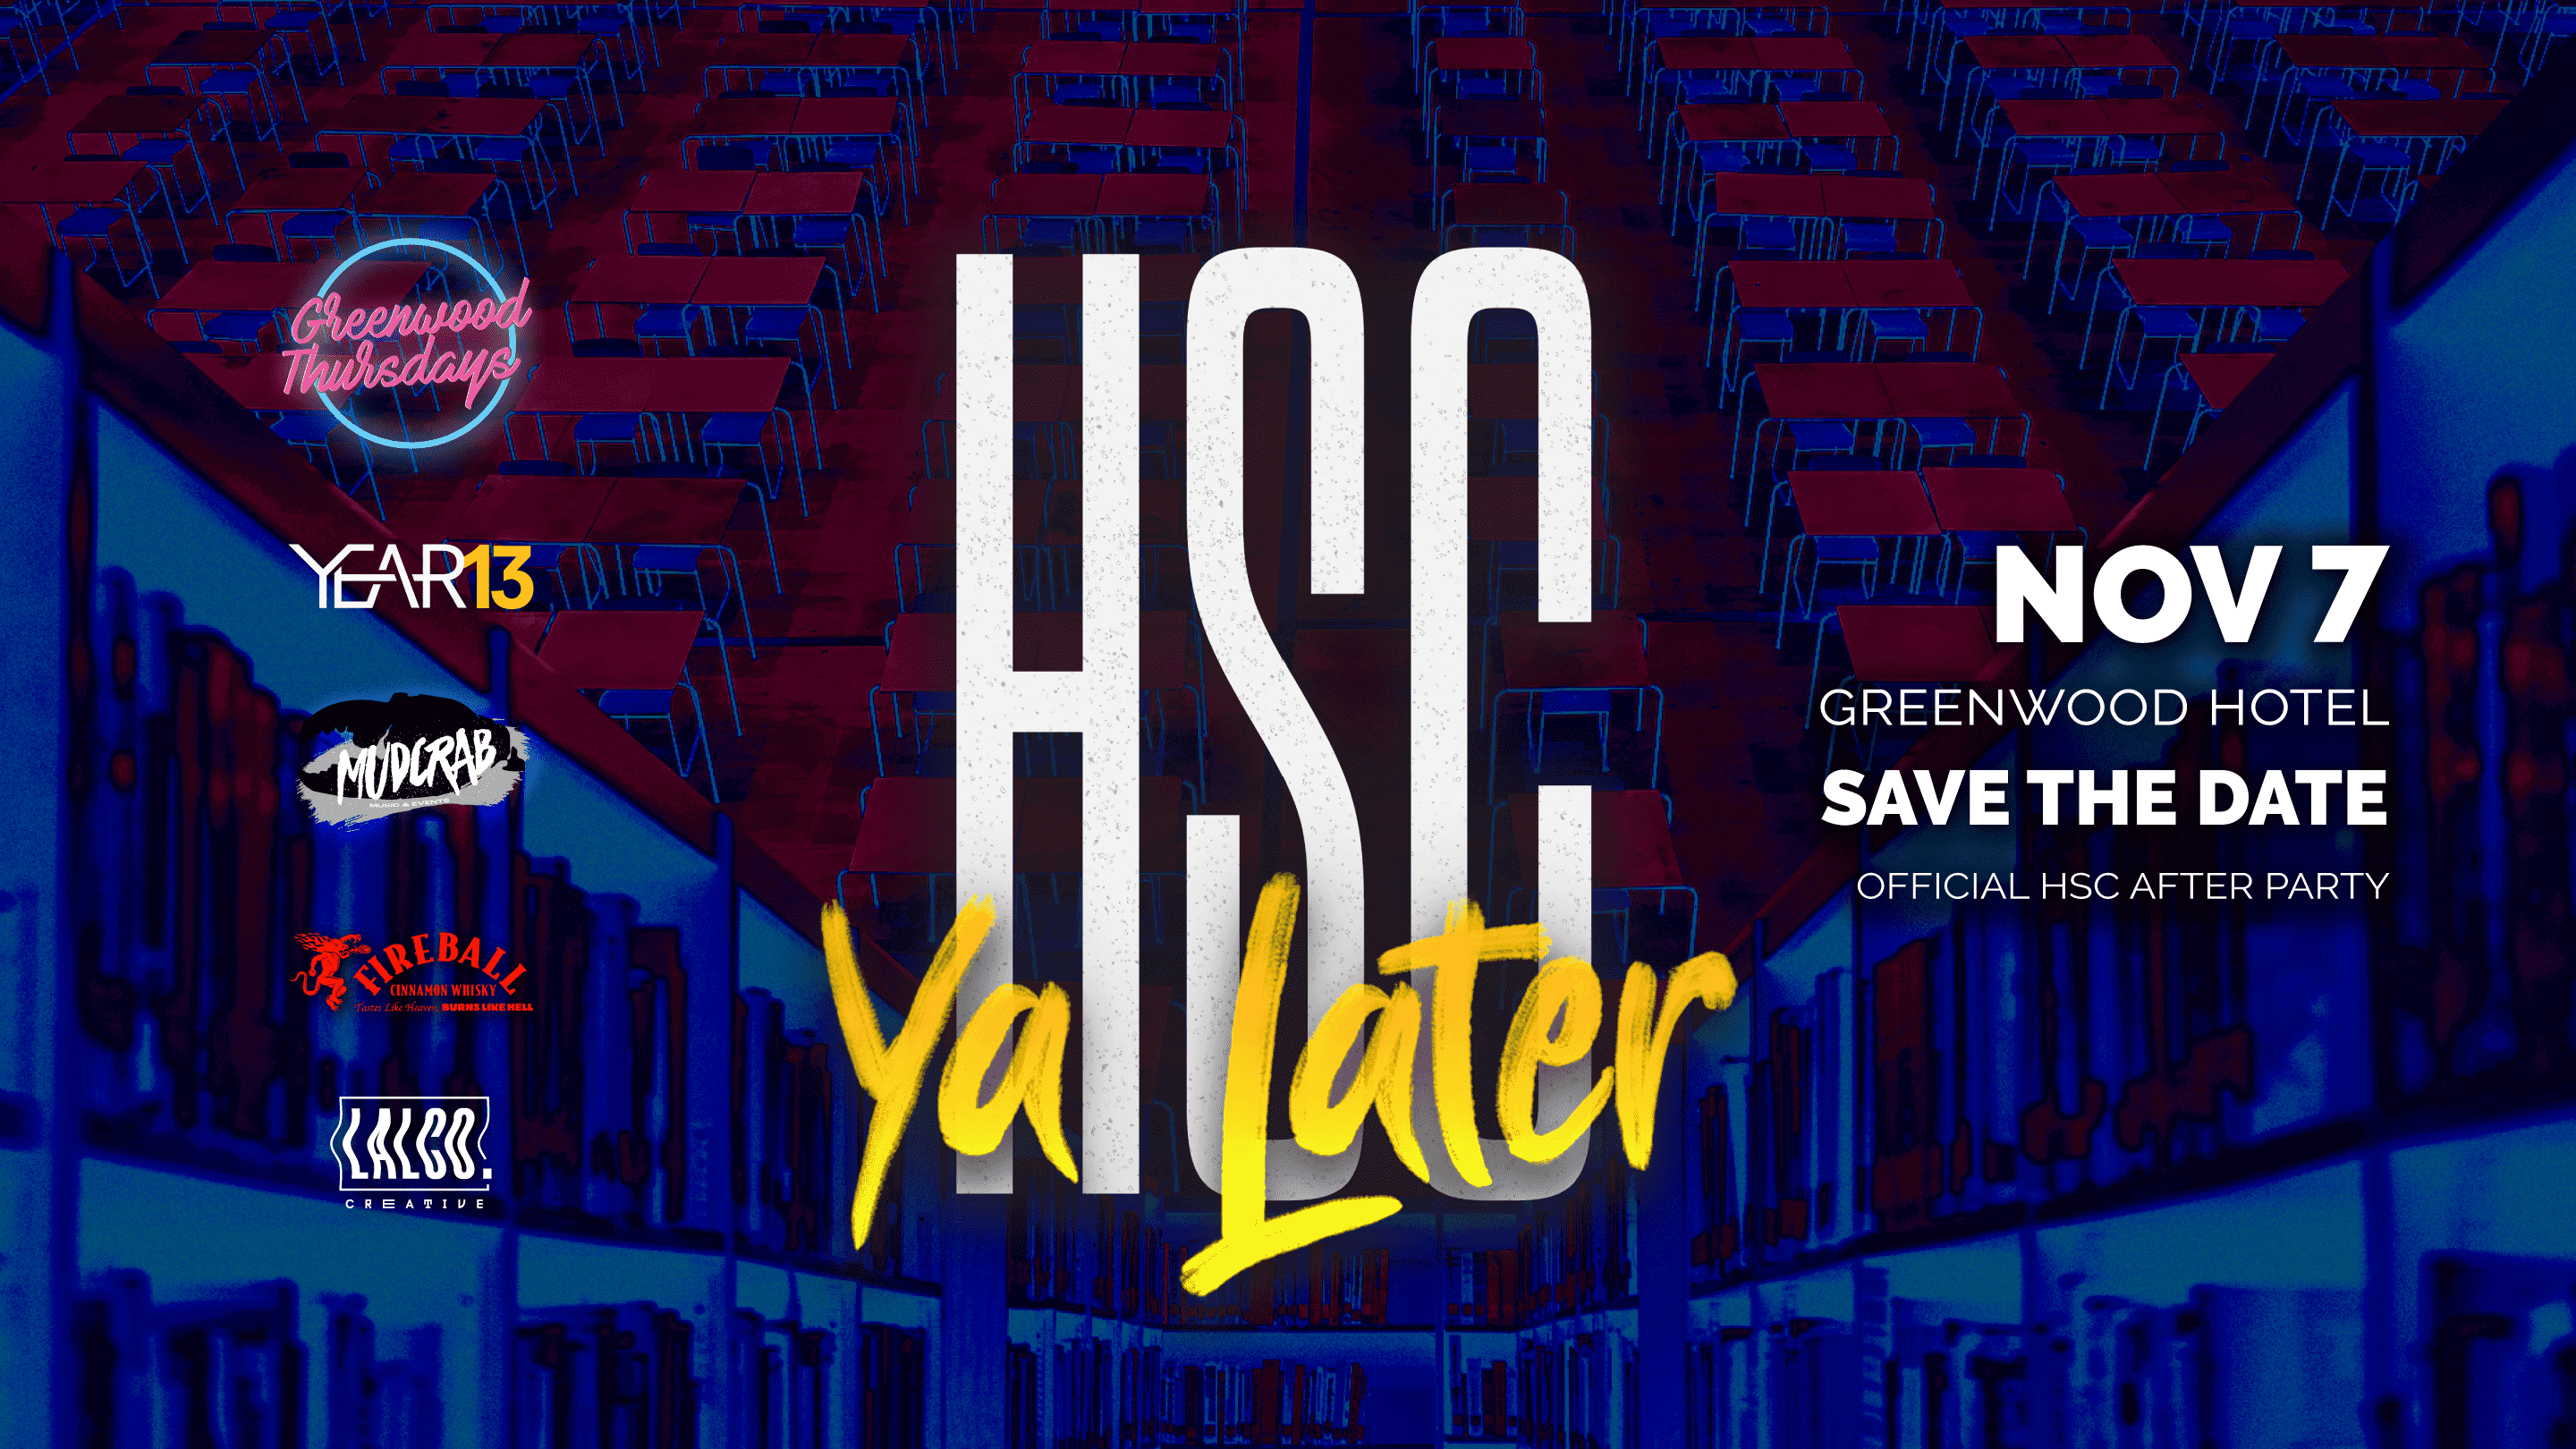 HSC Ya Later - Official HSC After Party